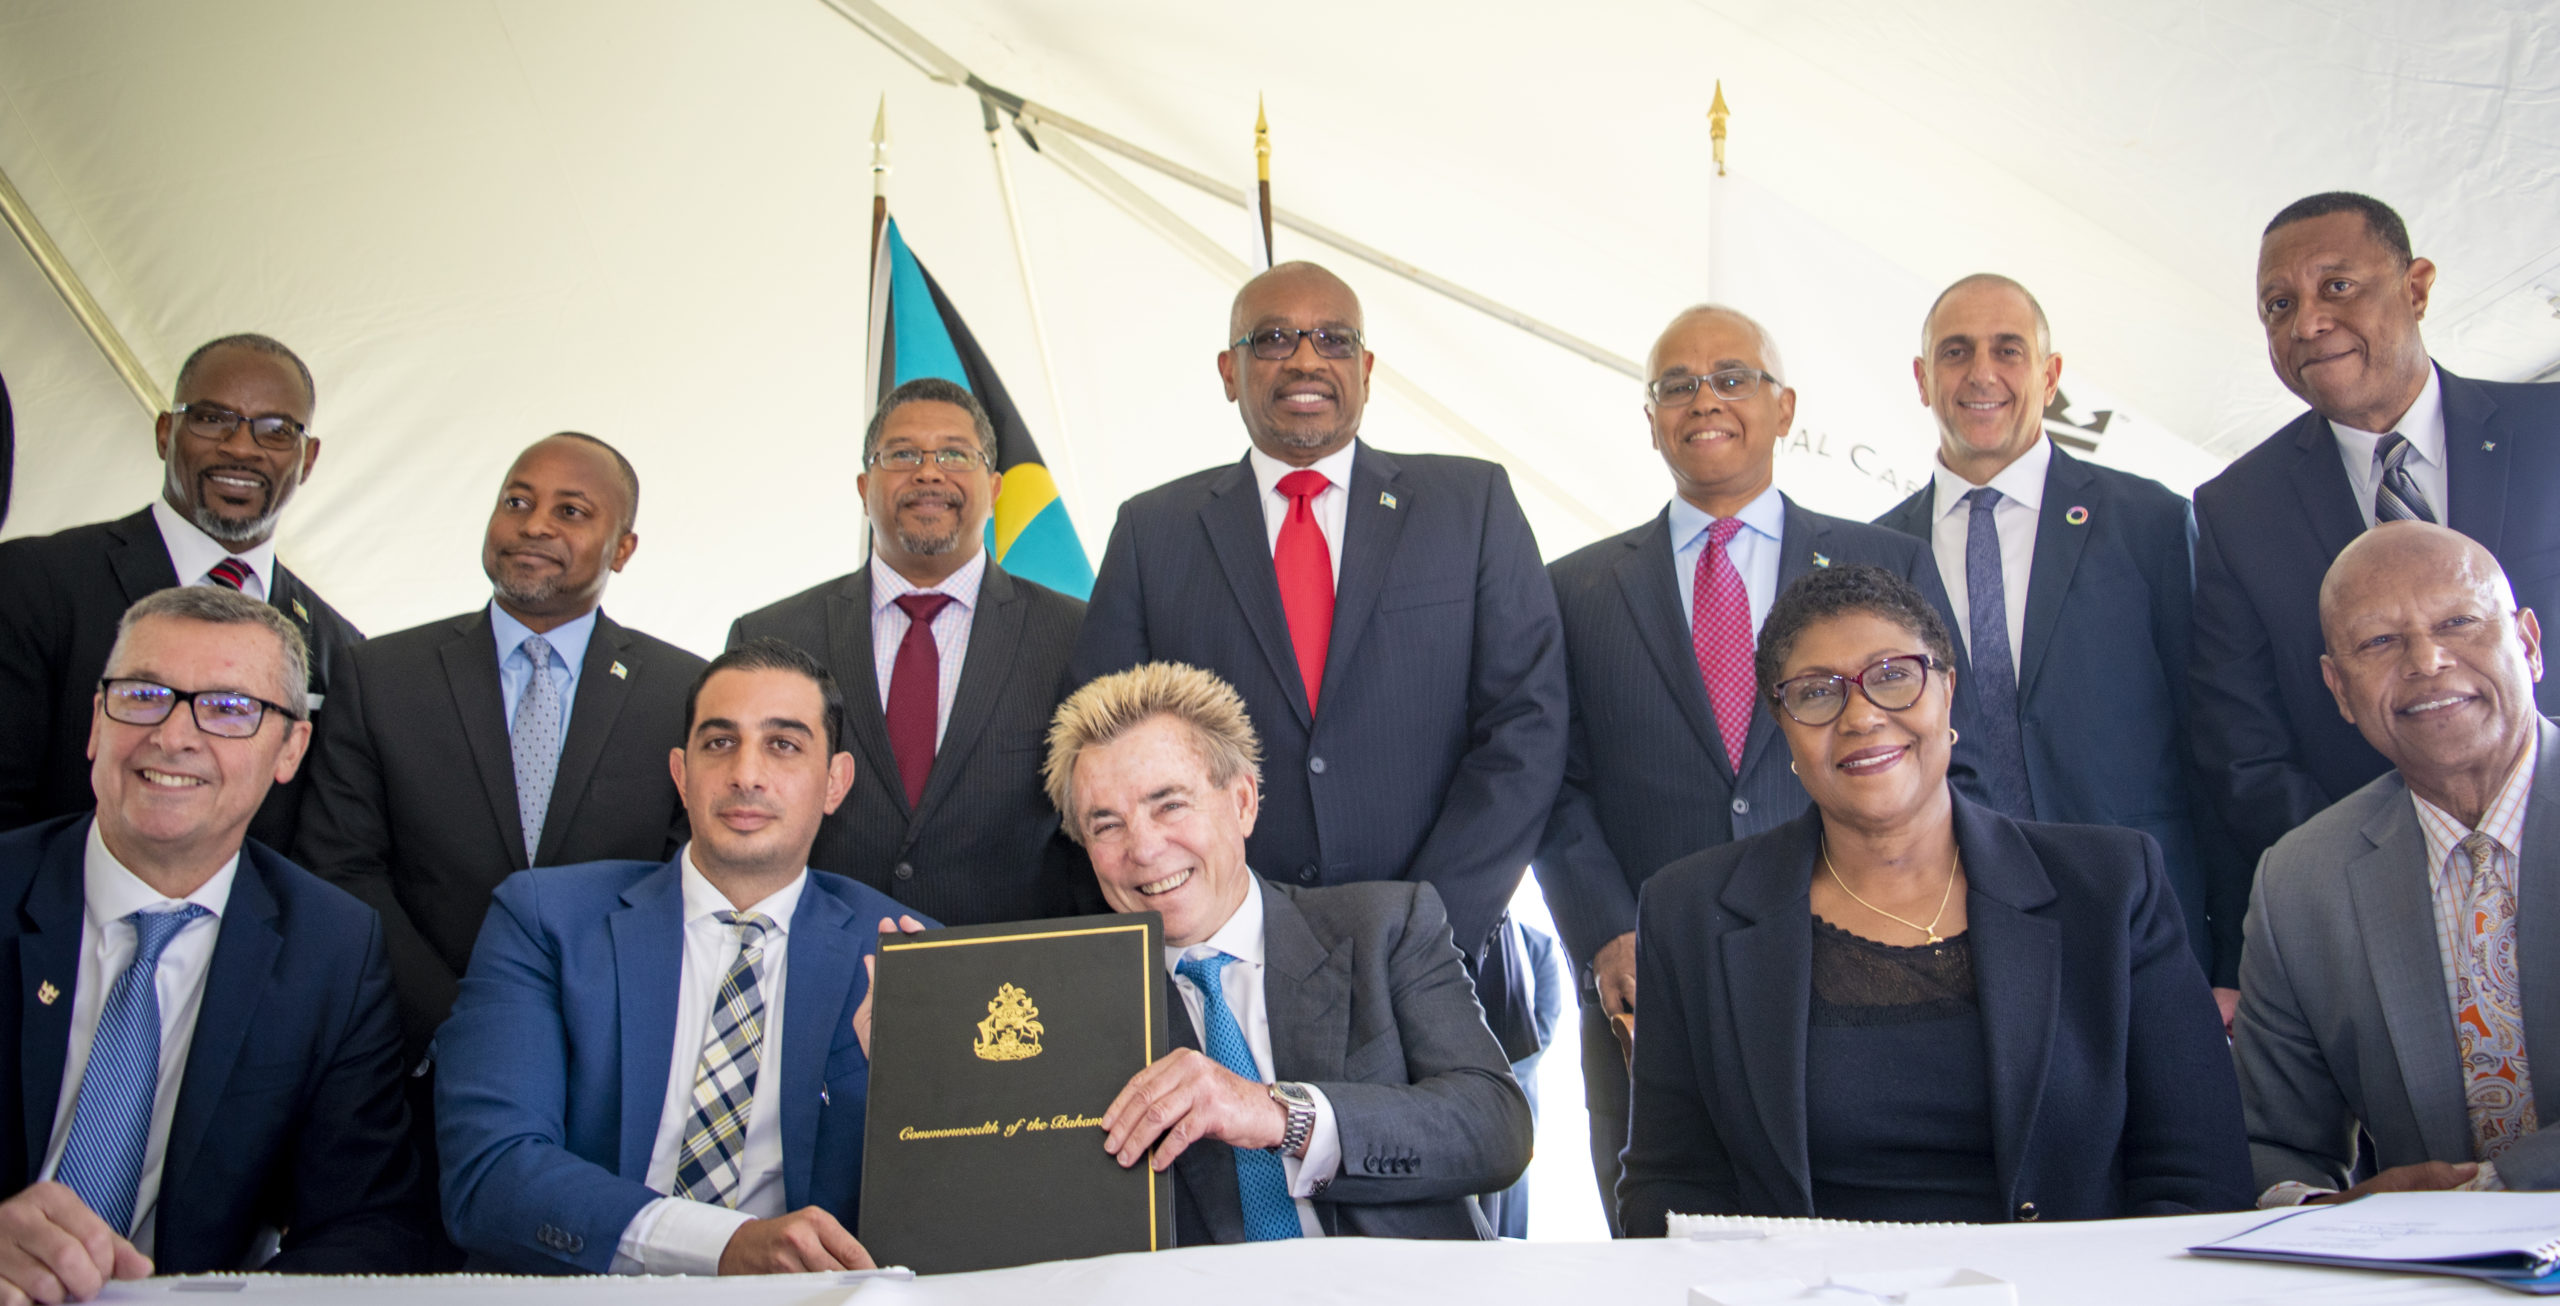 Grand Bahama hotel and port deal to create thousands of jobs